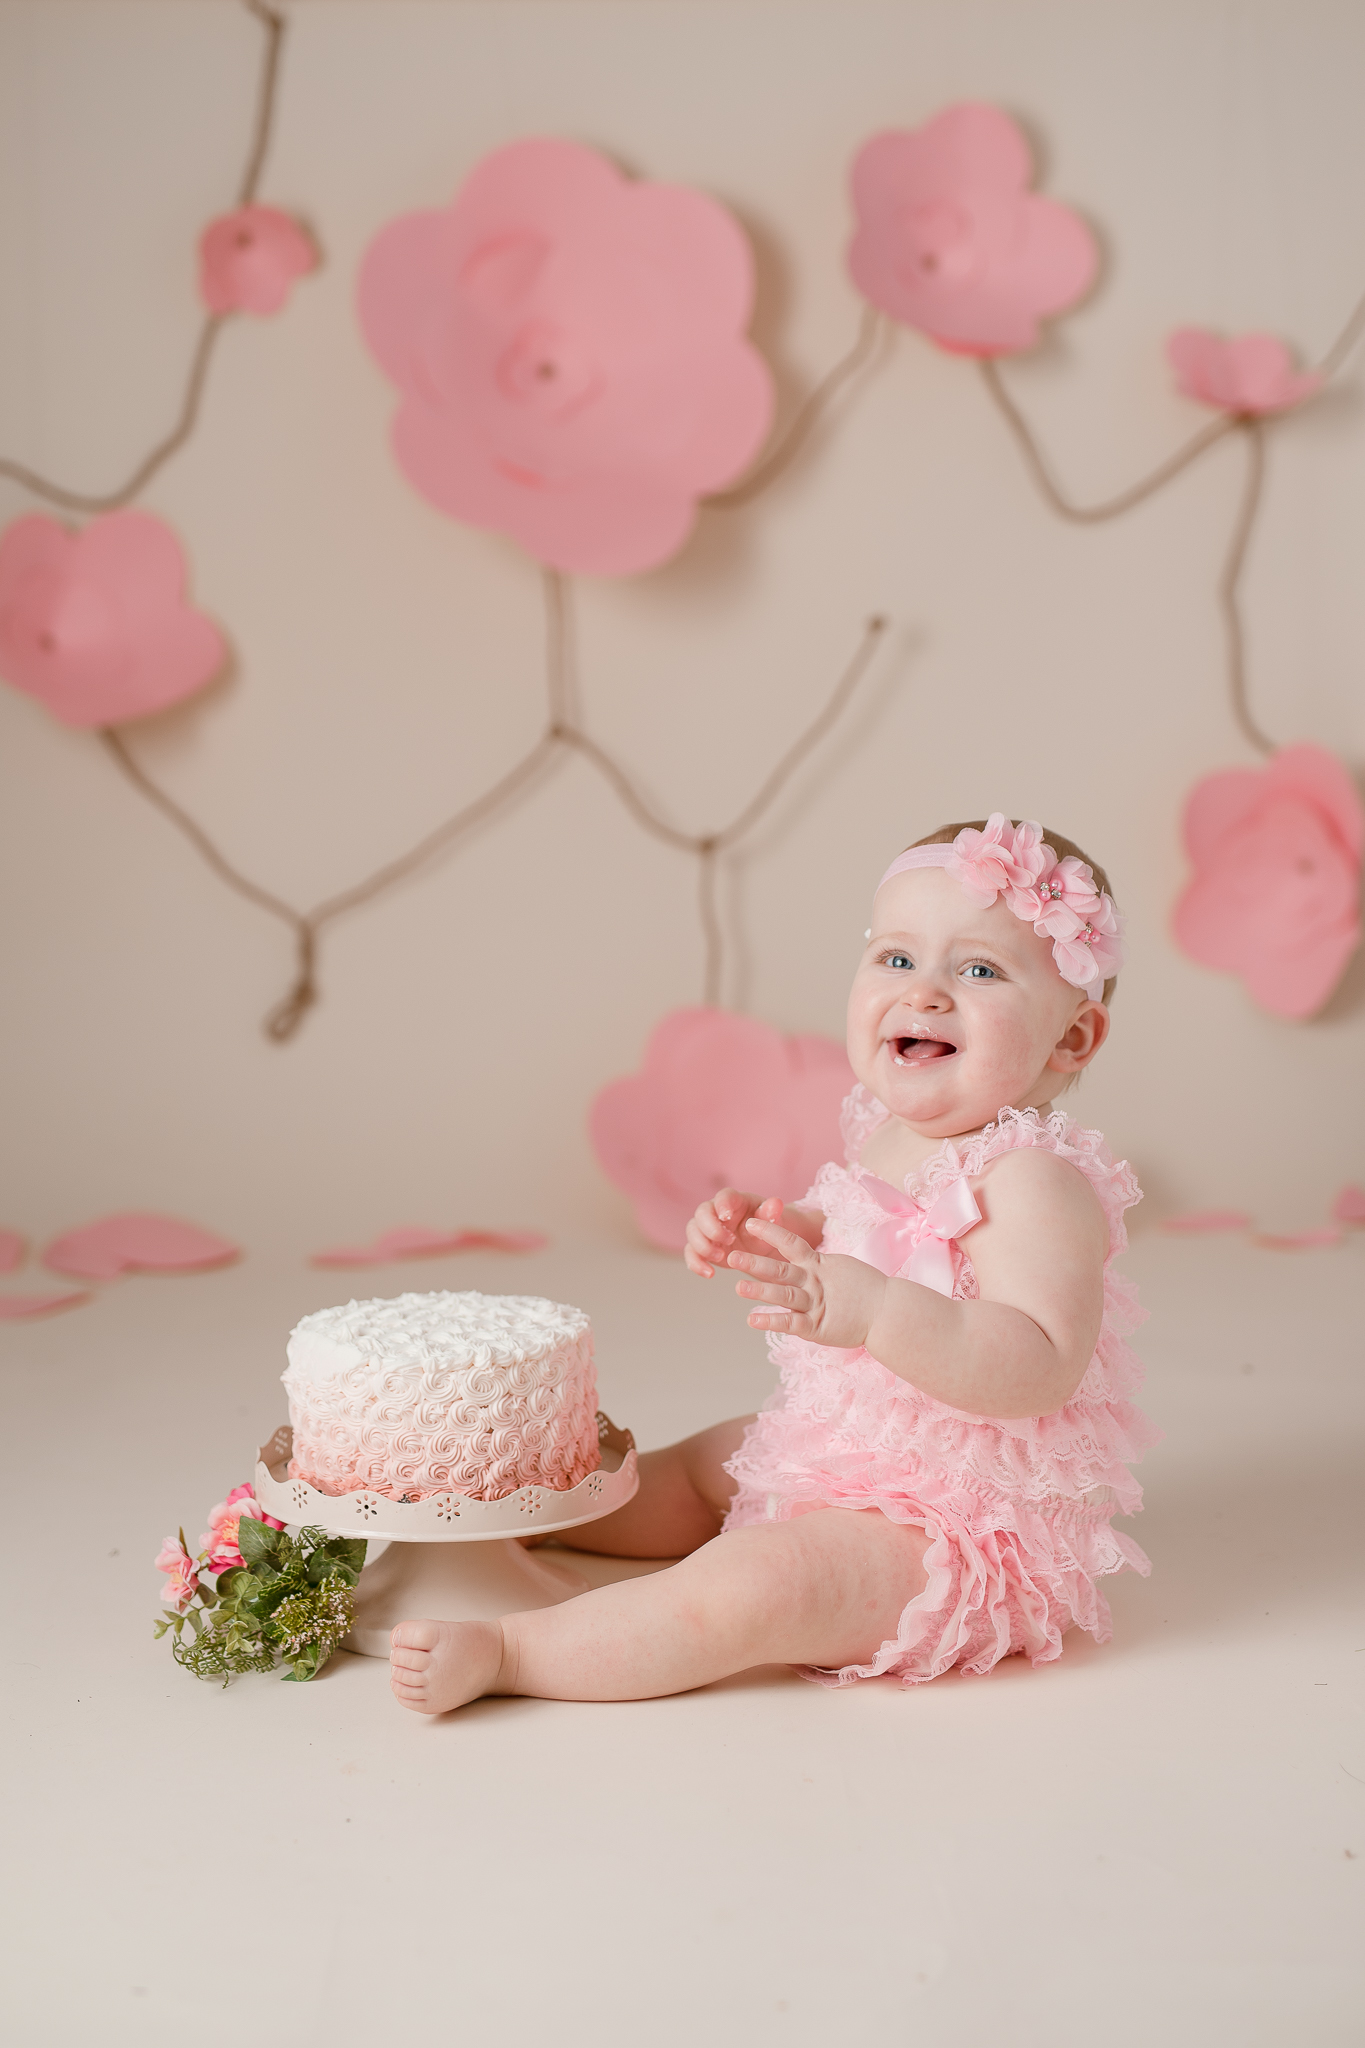 FirstBirthday301NaomiLuciennePhotography032019-Edit.jpg